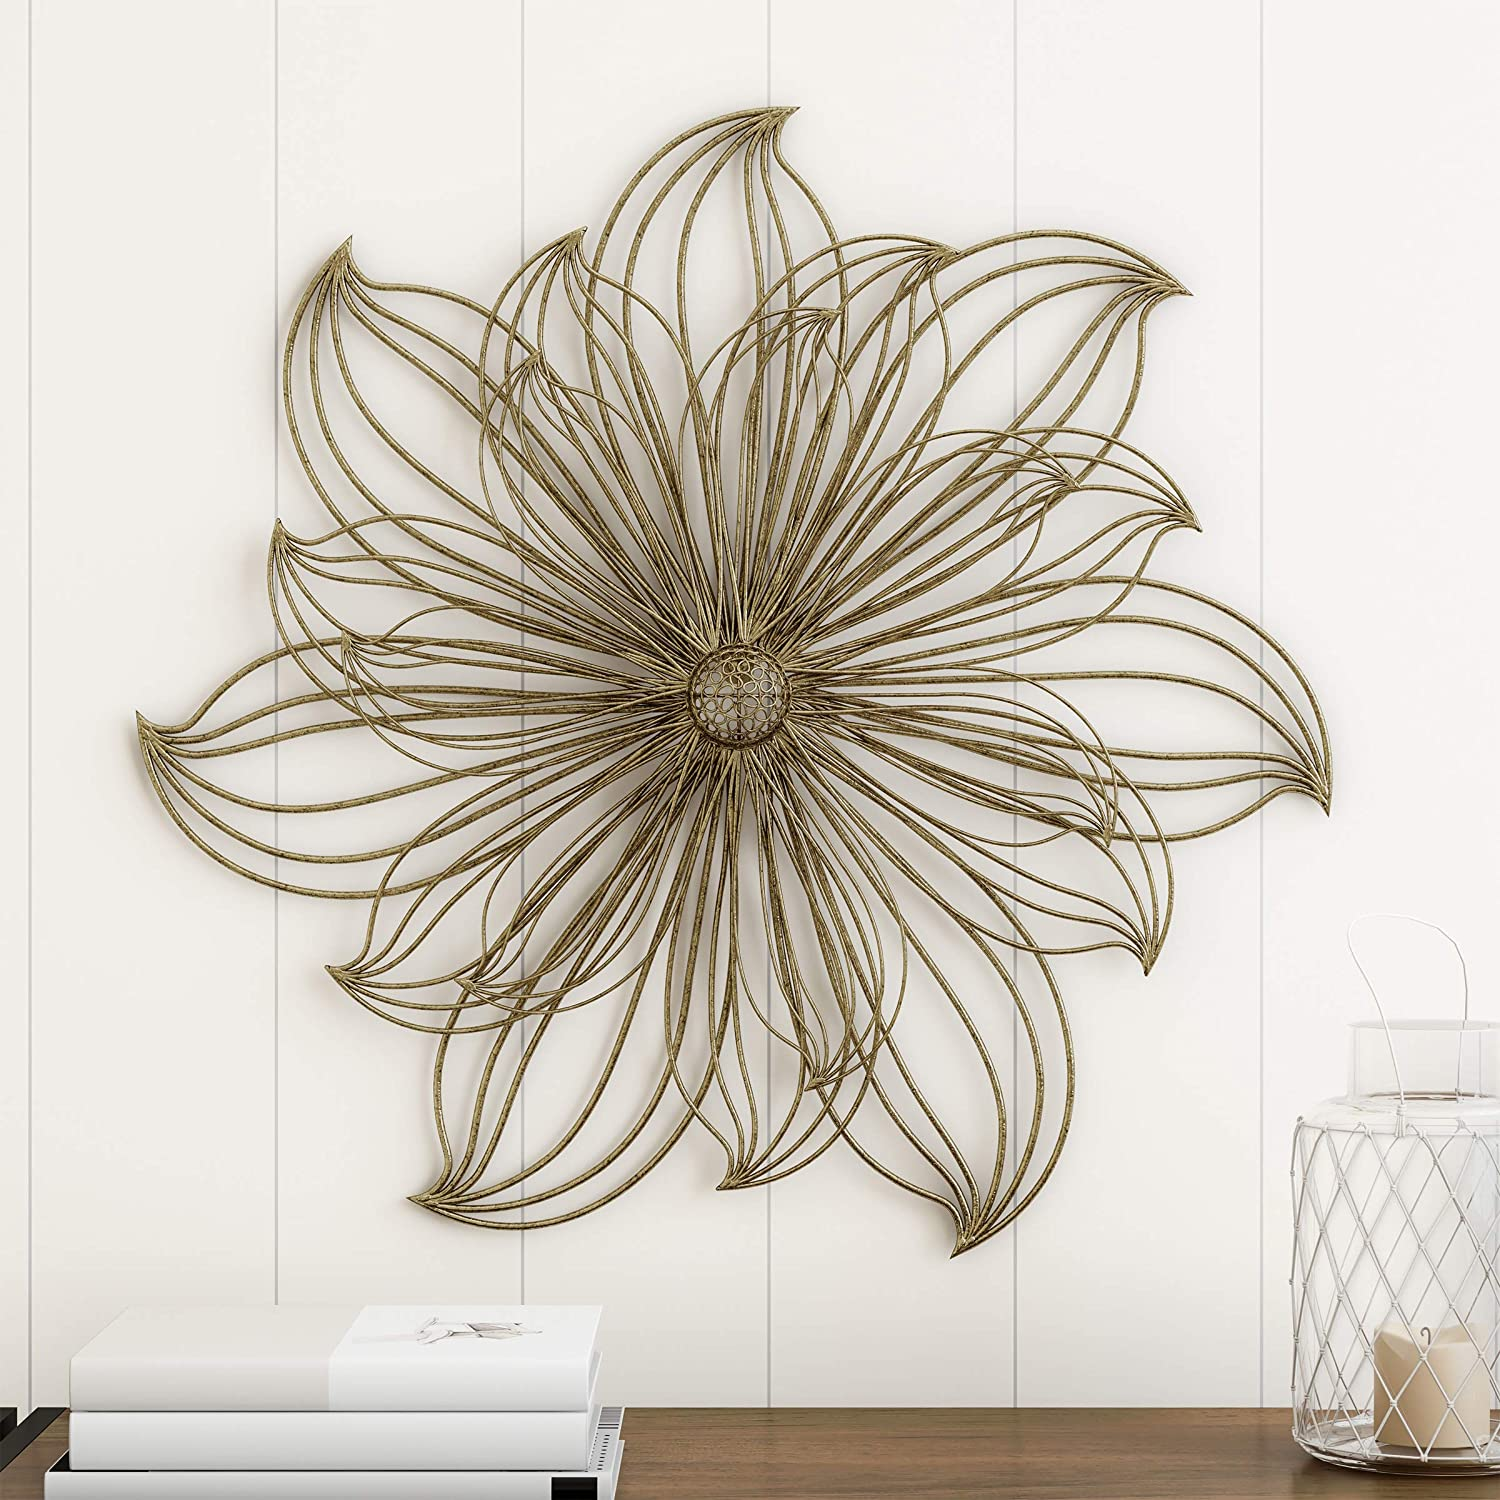 Home Lavish Wall Decor-Metallic Layered Large Wire Flower Sculpture Modern Hanging Accent Art for Living Room, Bedroom or Kitchen, Gold